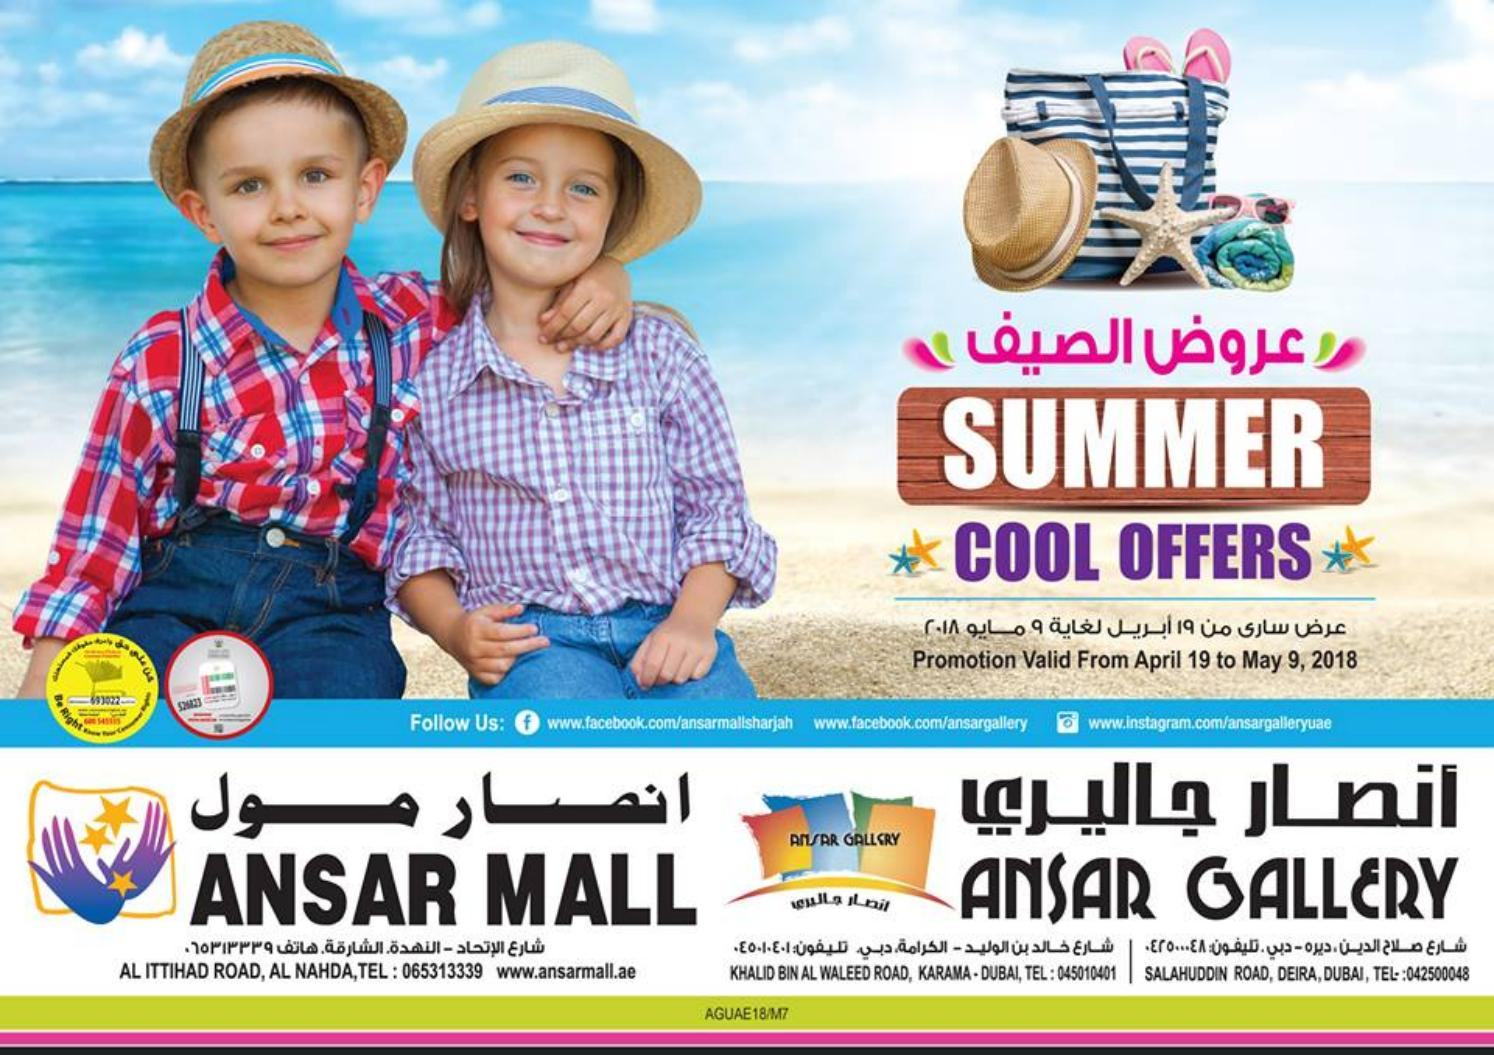 Summer Cool Offers